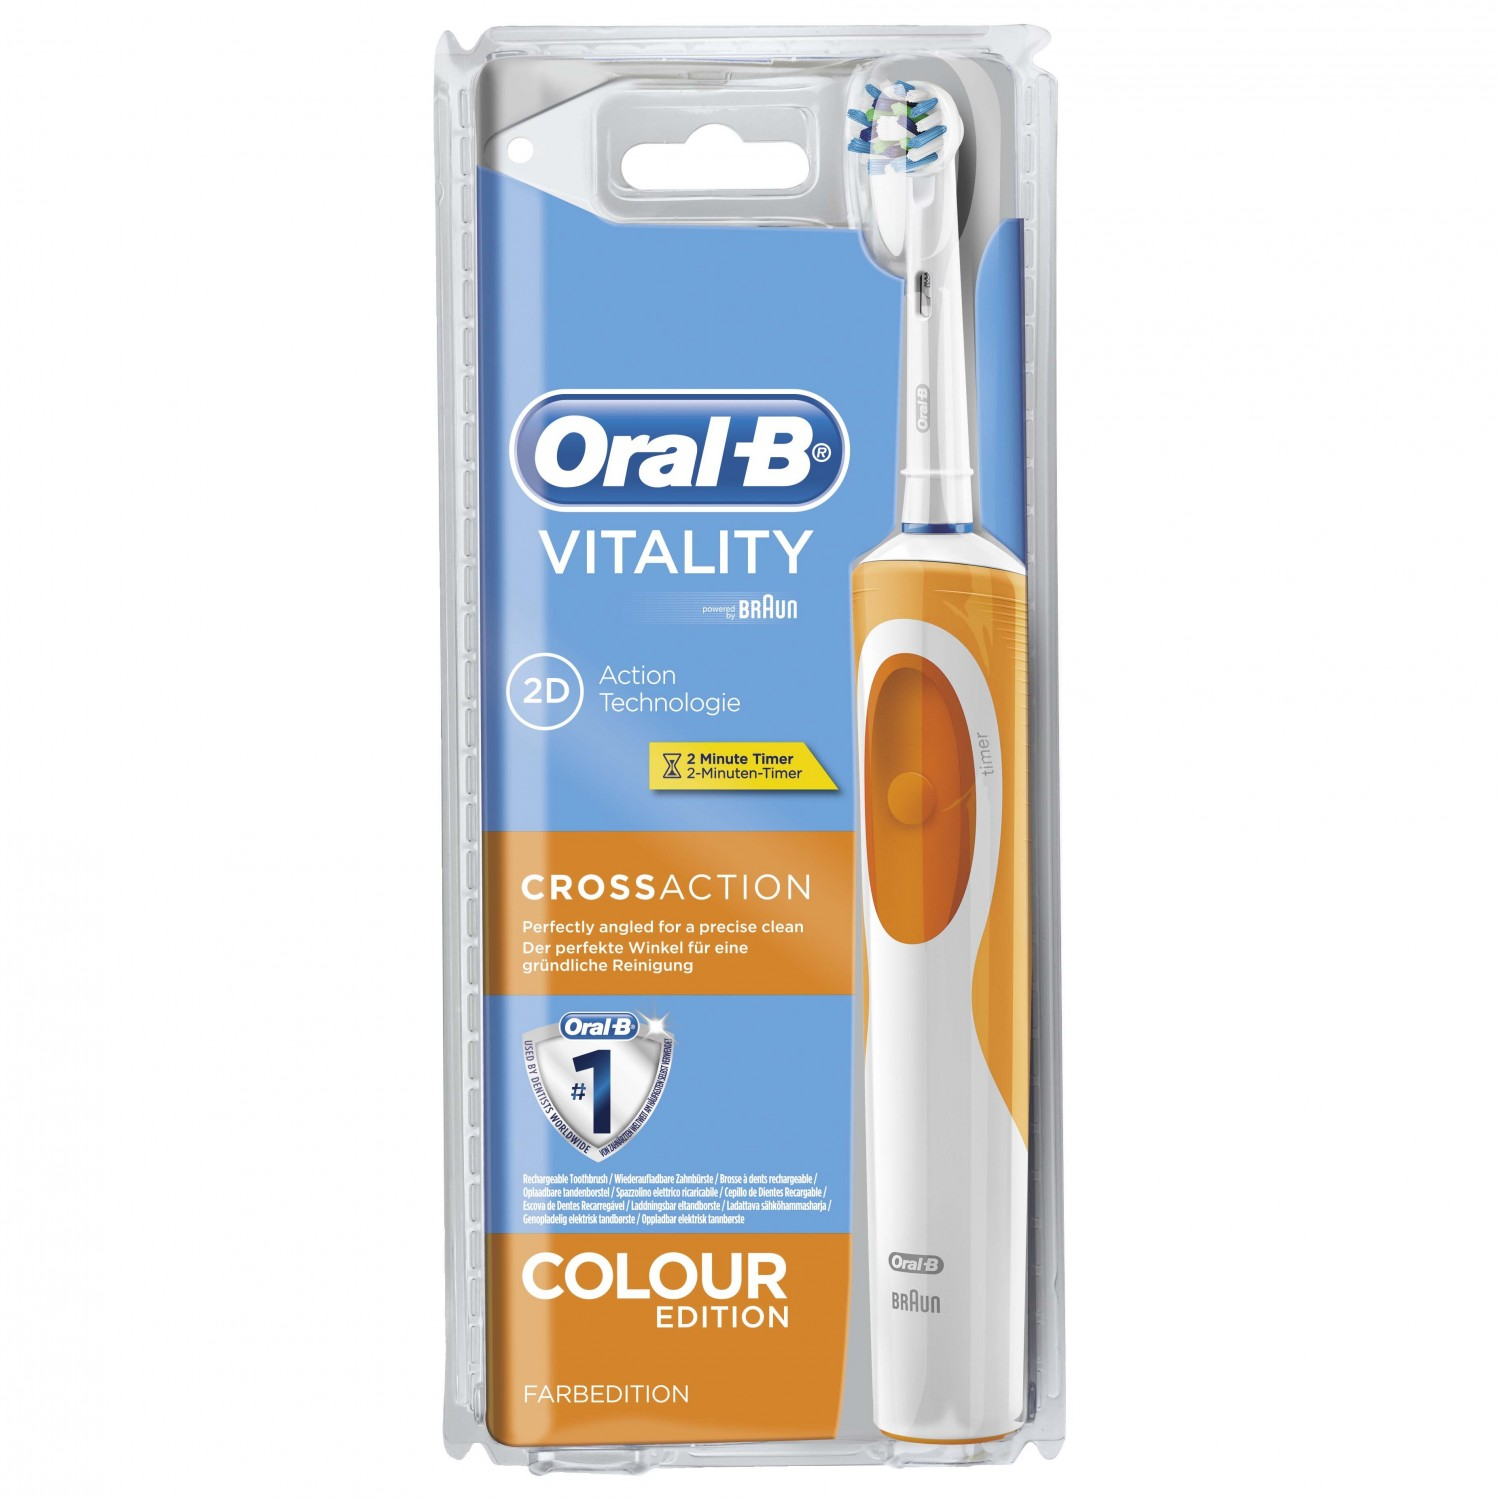 Oral B cepillo dental electrico vitality cross action naranja blister